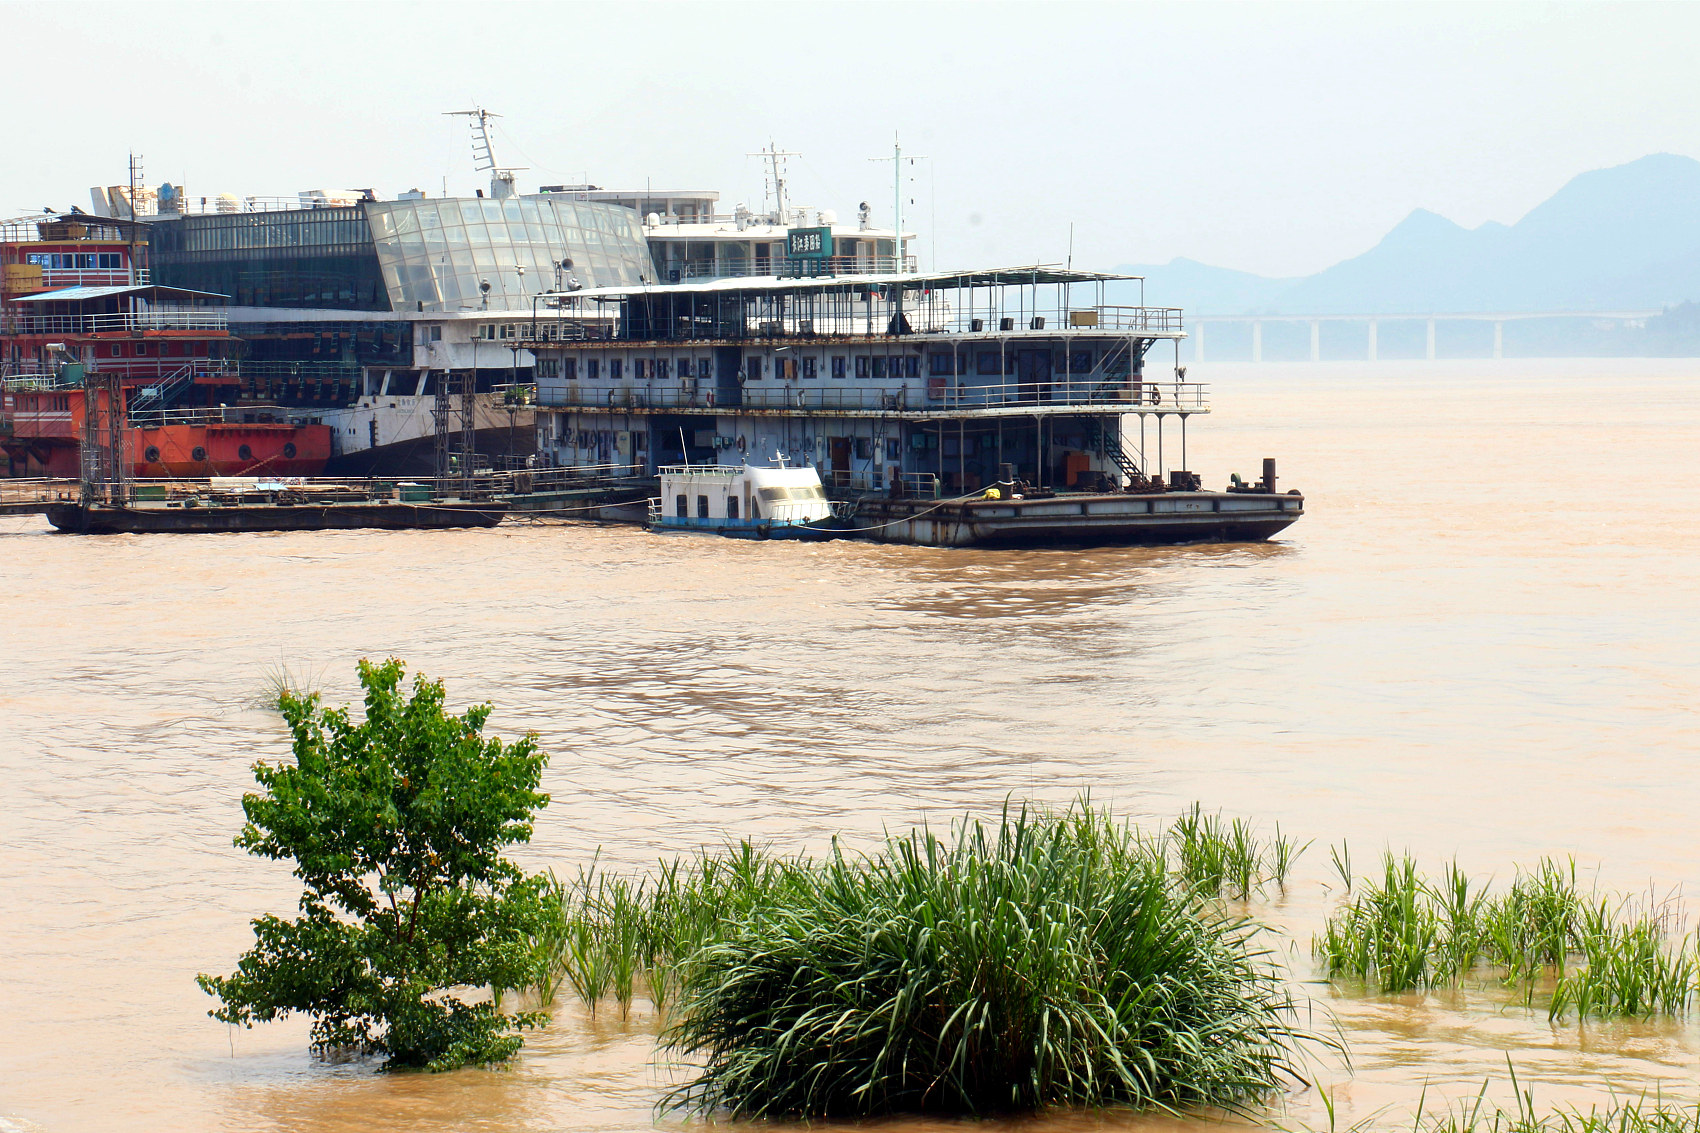 158 people dead or missing in China due to floods